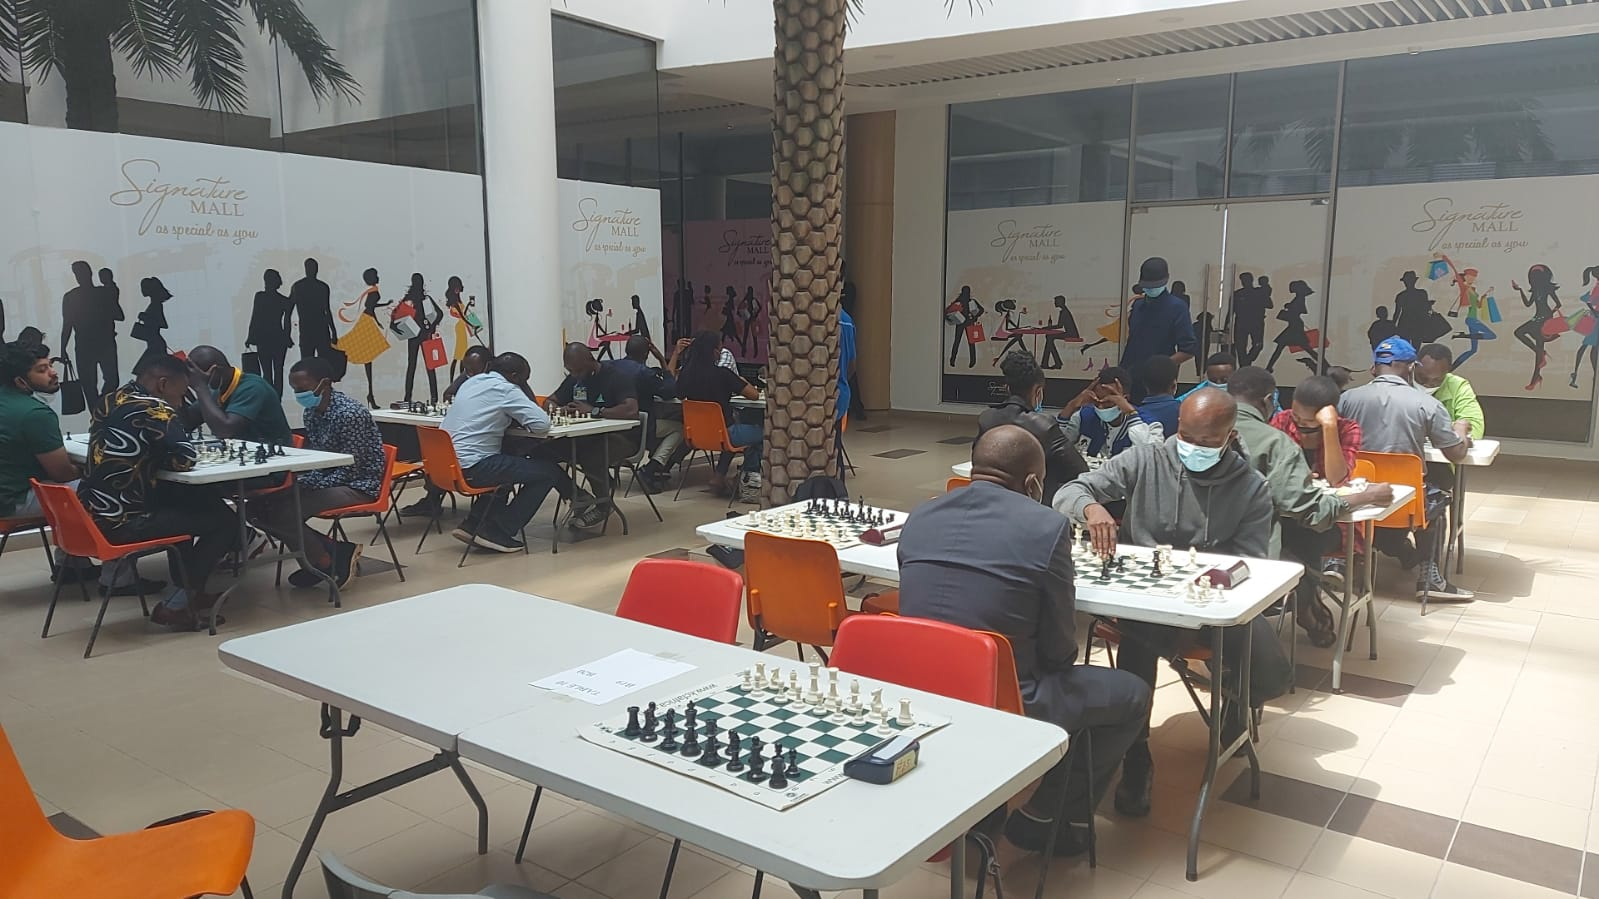 Playing hall at the Signature Mall.